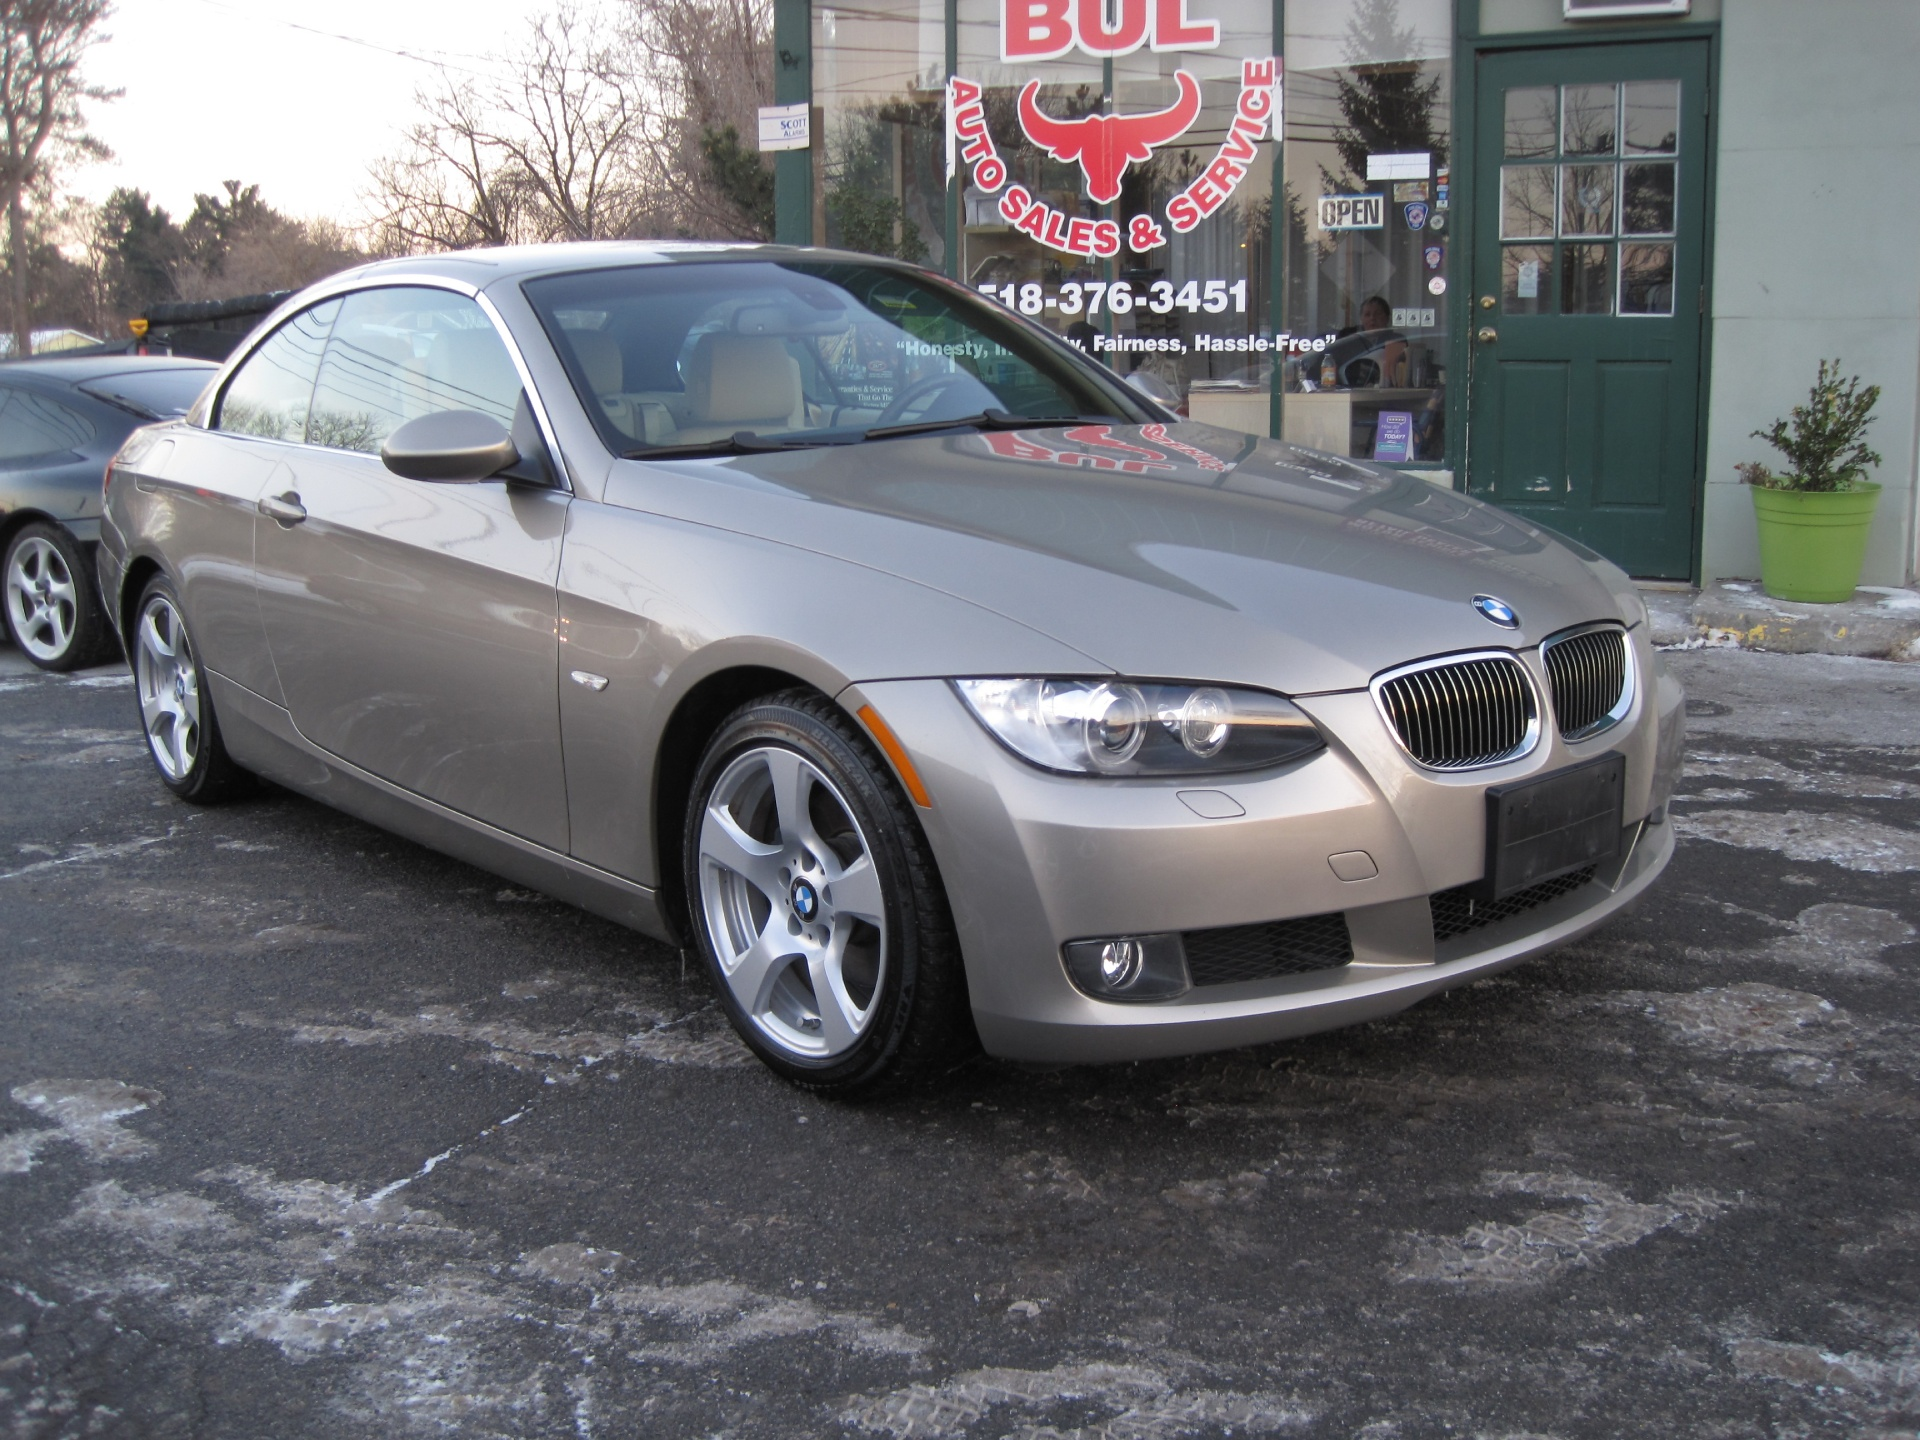 2009 bmw 3 series 328i convertible rare 6 speed manual very clean stock 15013 for sale near. Black Bedroom Furniture Sets. Home Design Ideas